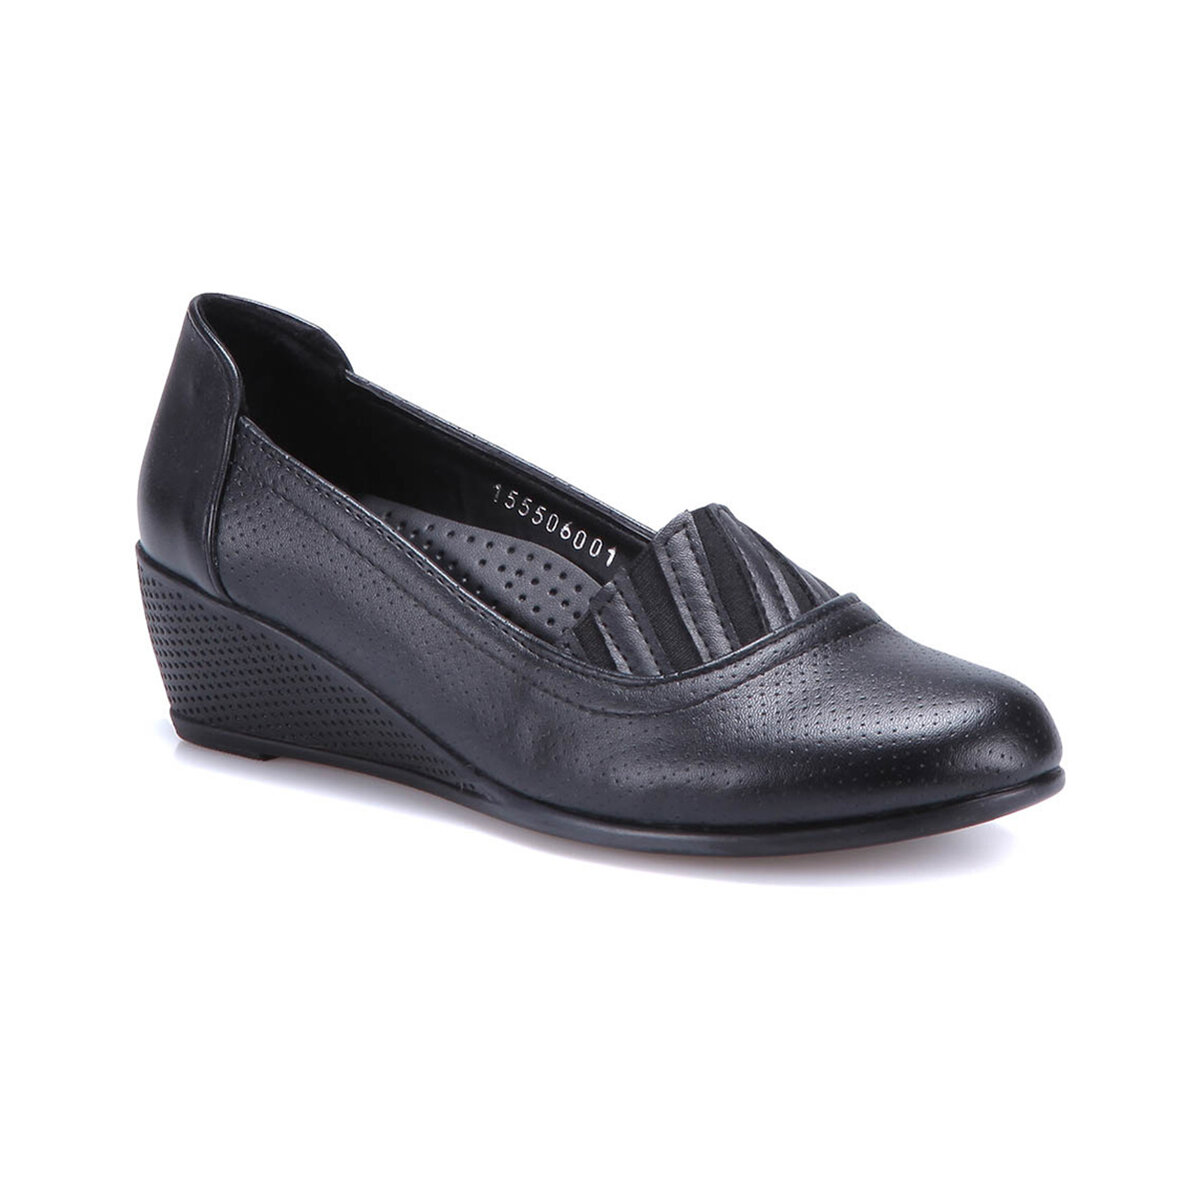 FLO 71. 155506.Z Black Women 'S Classic Shoes Polaris